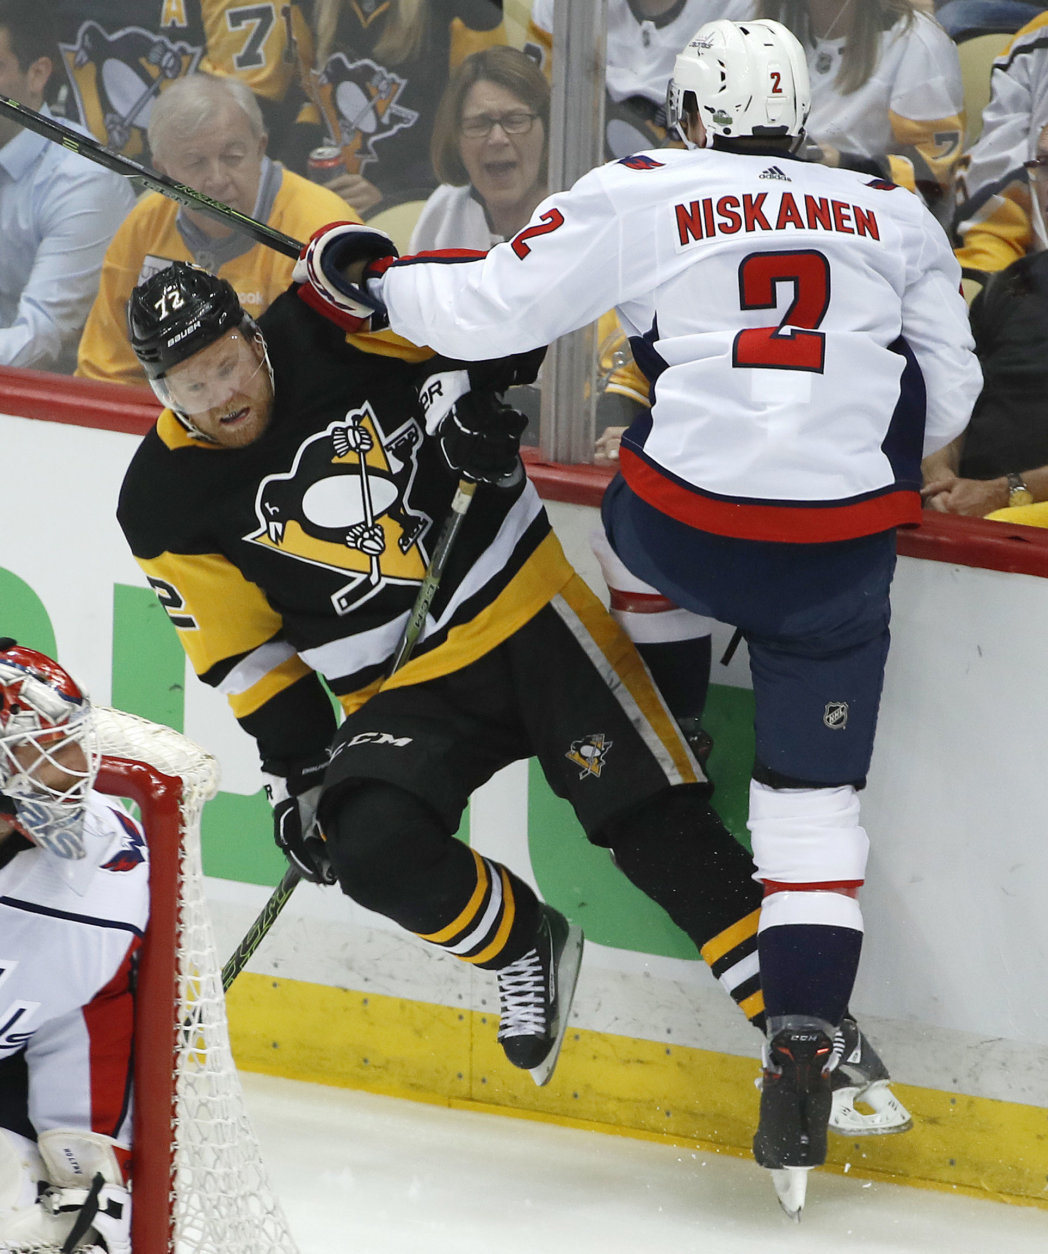 Washington Capitals' Matt Niskanen (2) collides with Pittsburgh Penguins' Patric Hornqvist (72) during the first period in Game 4 of an NHL second-round hockey playoff series in Pittsburgh, Thursday, May 3, 2018. (AP Photo/Gene J. Puskar)